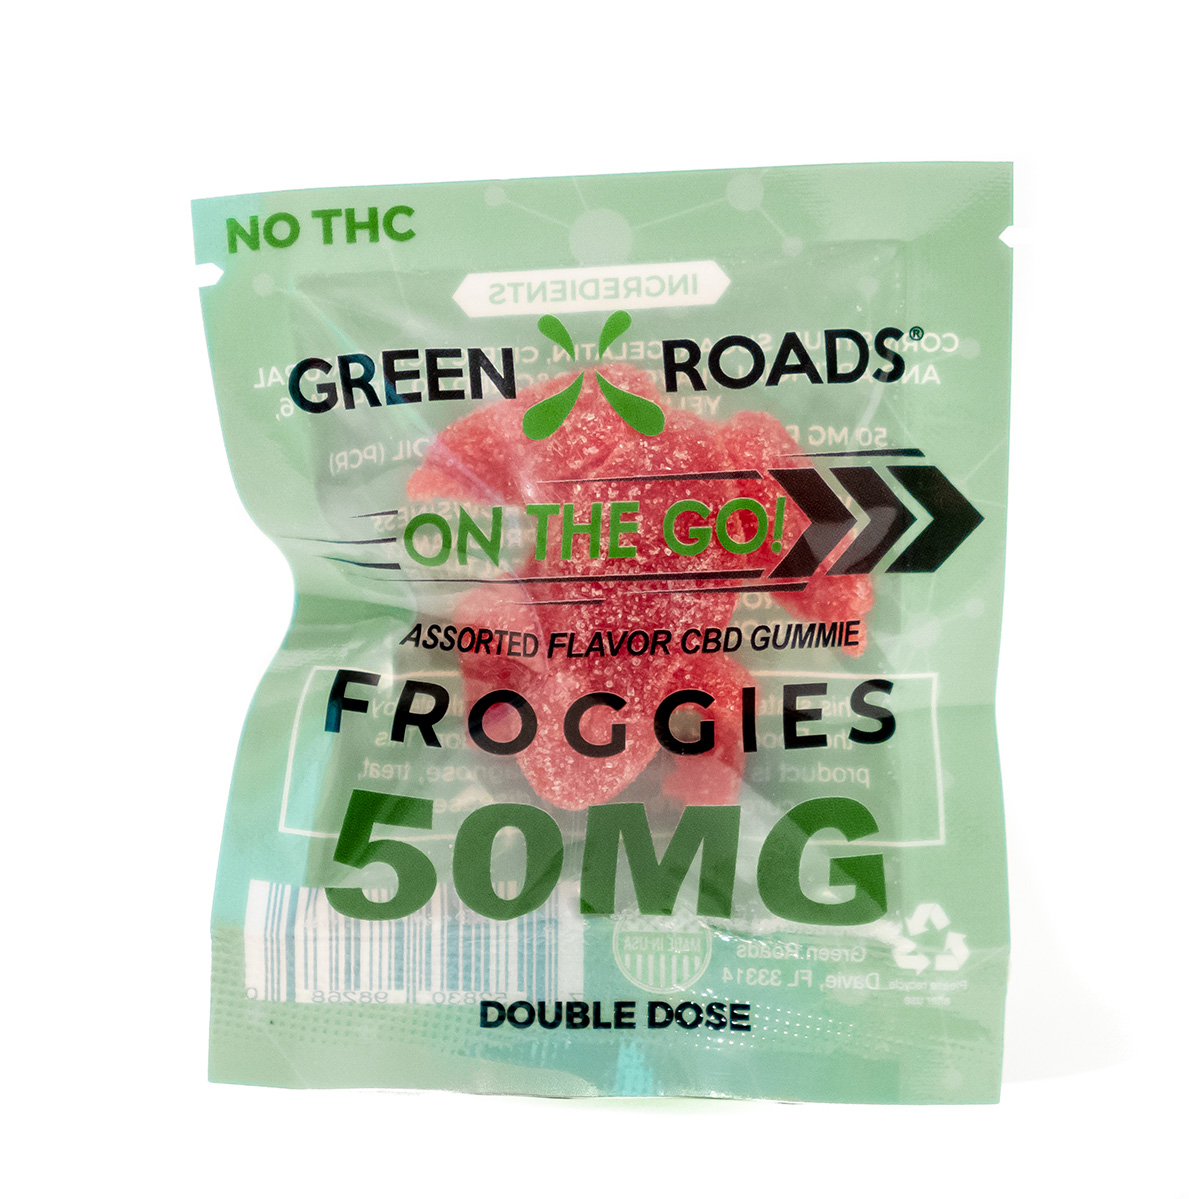 50 MG Froggie (2 Doses) $8